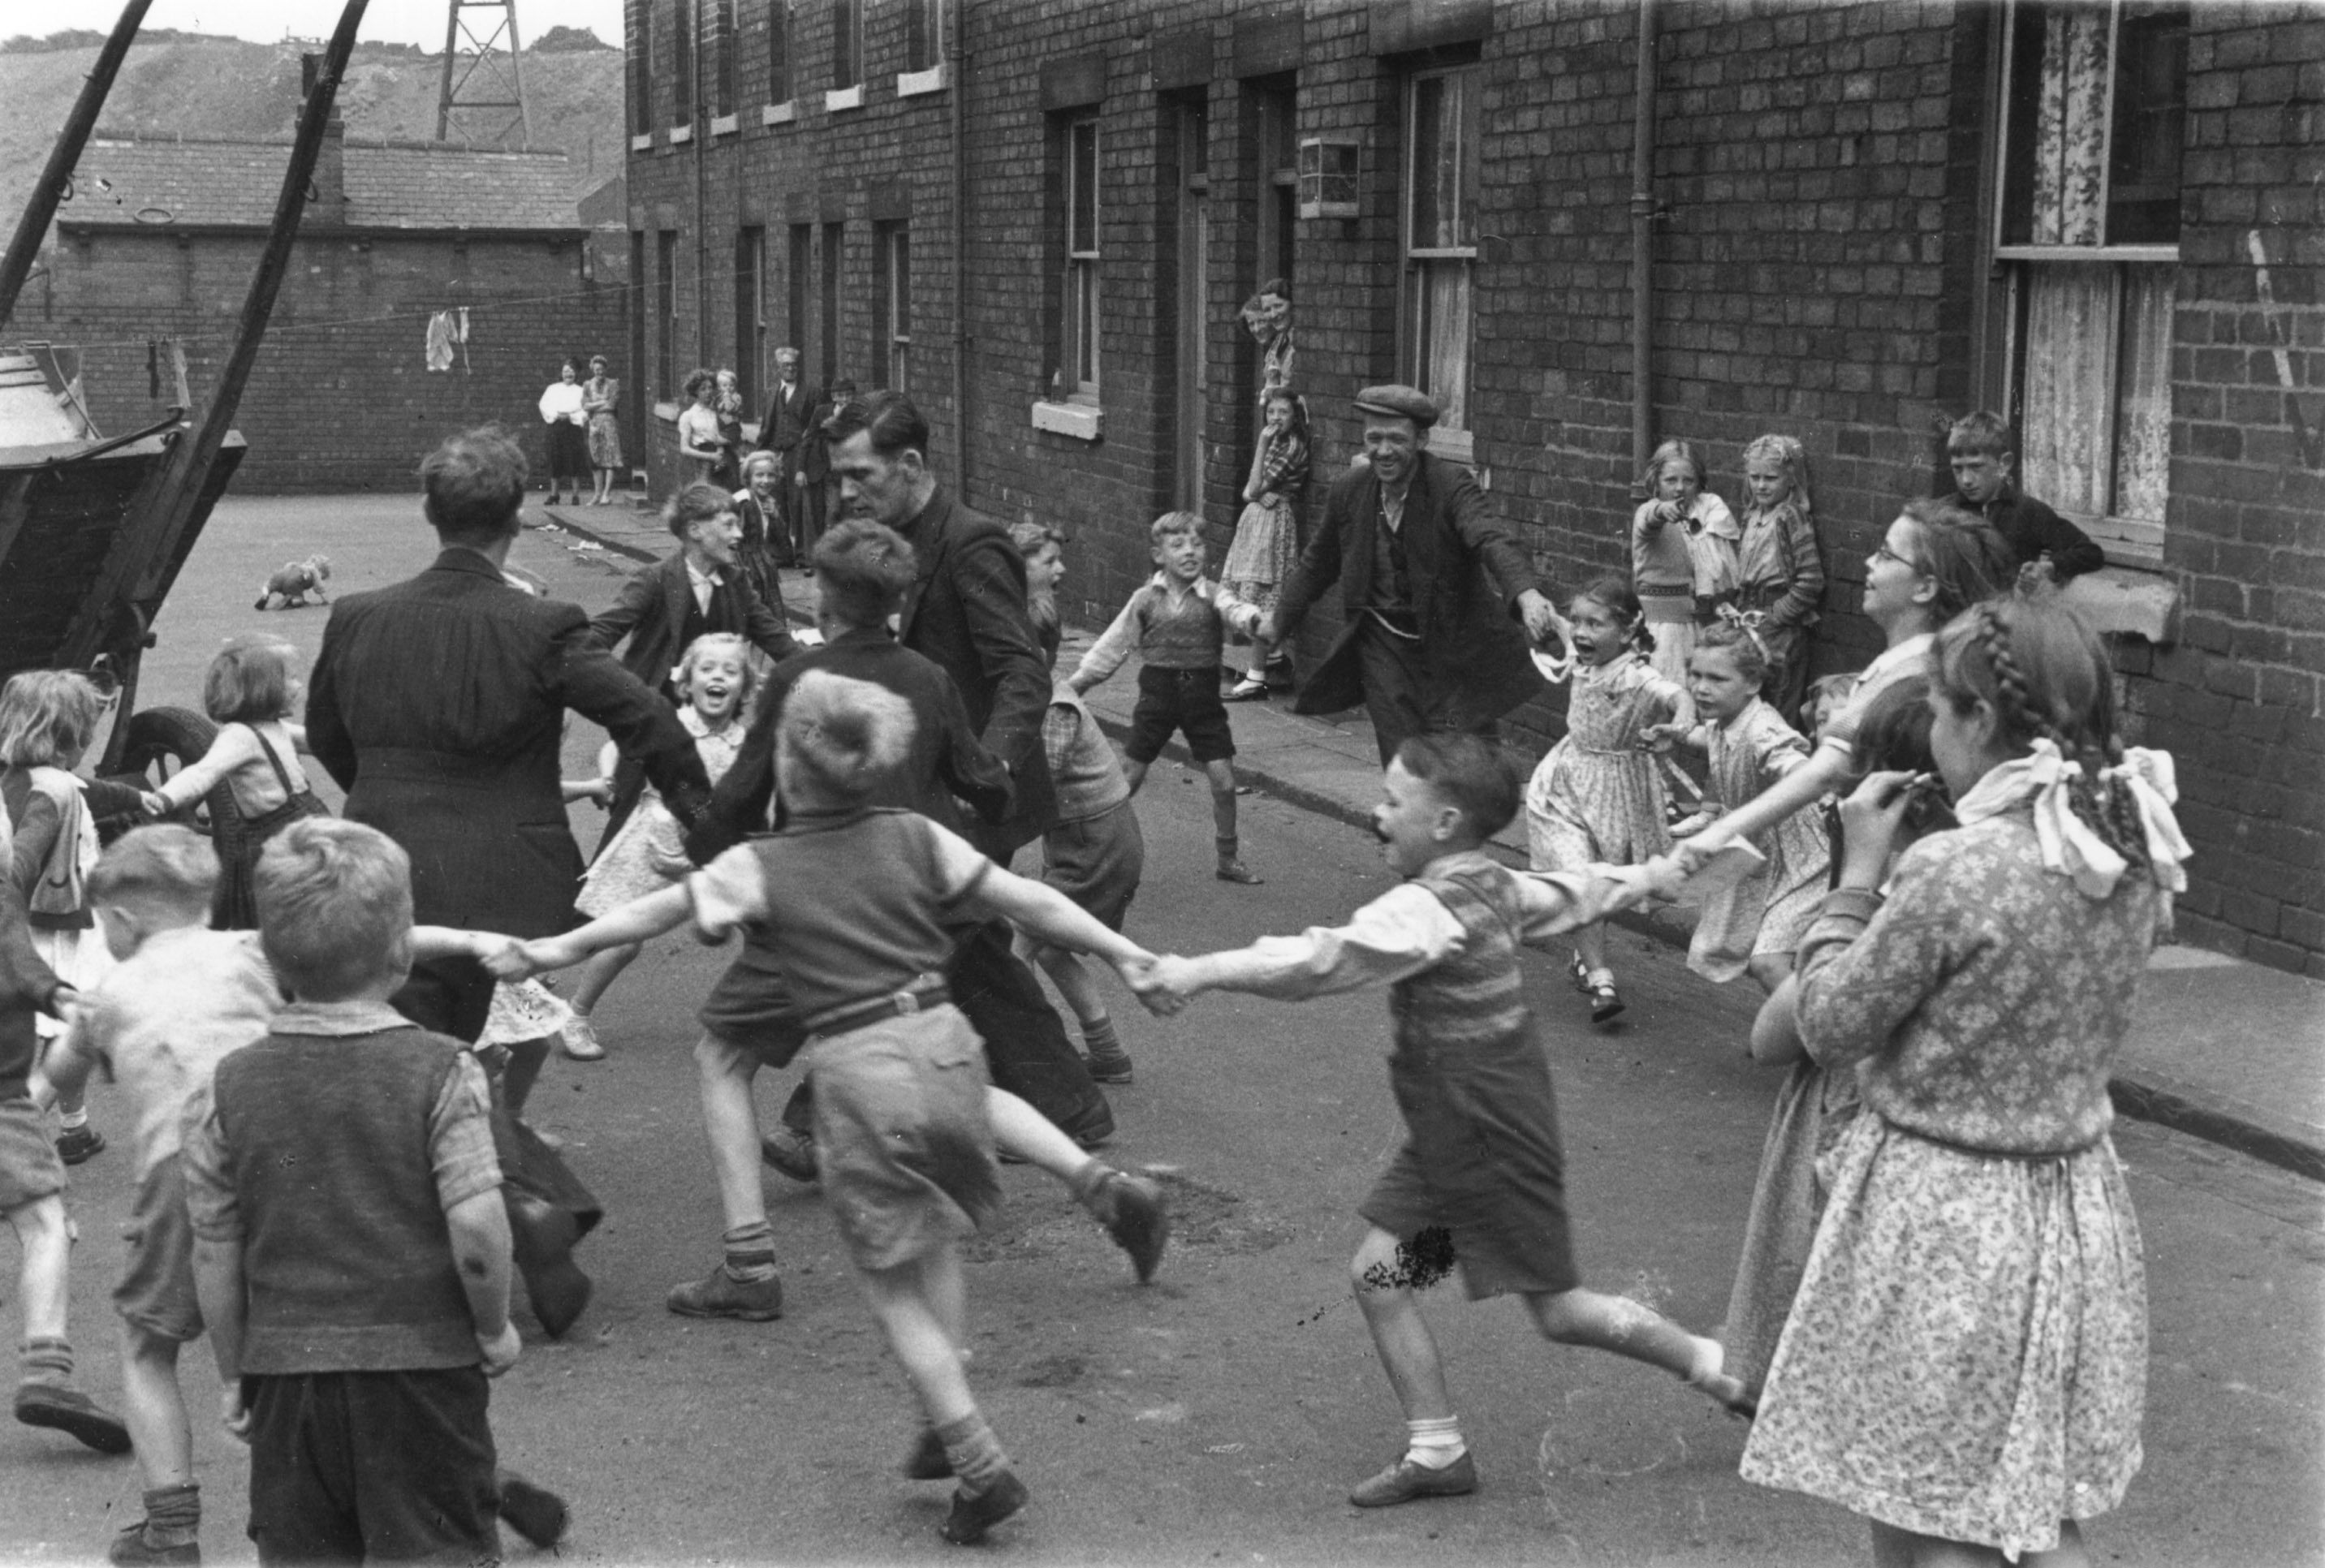 Miners playing with their children in Fryston, Yorkshire (1940s)